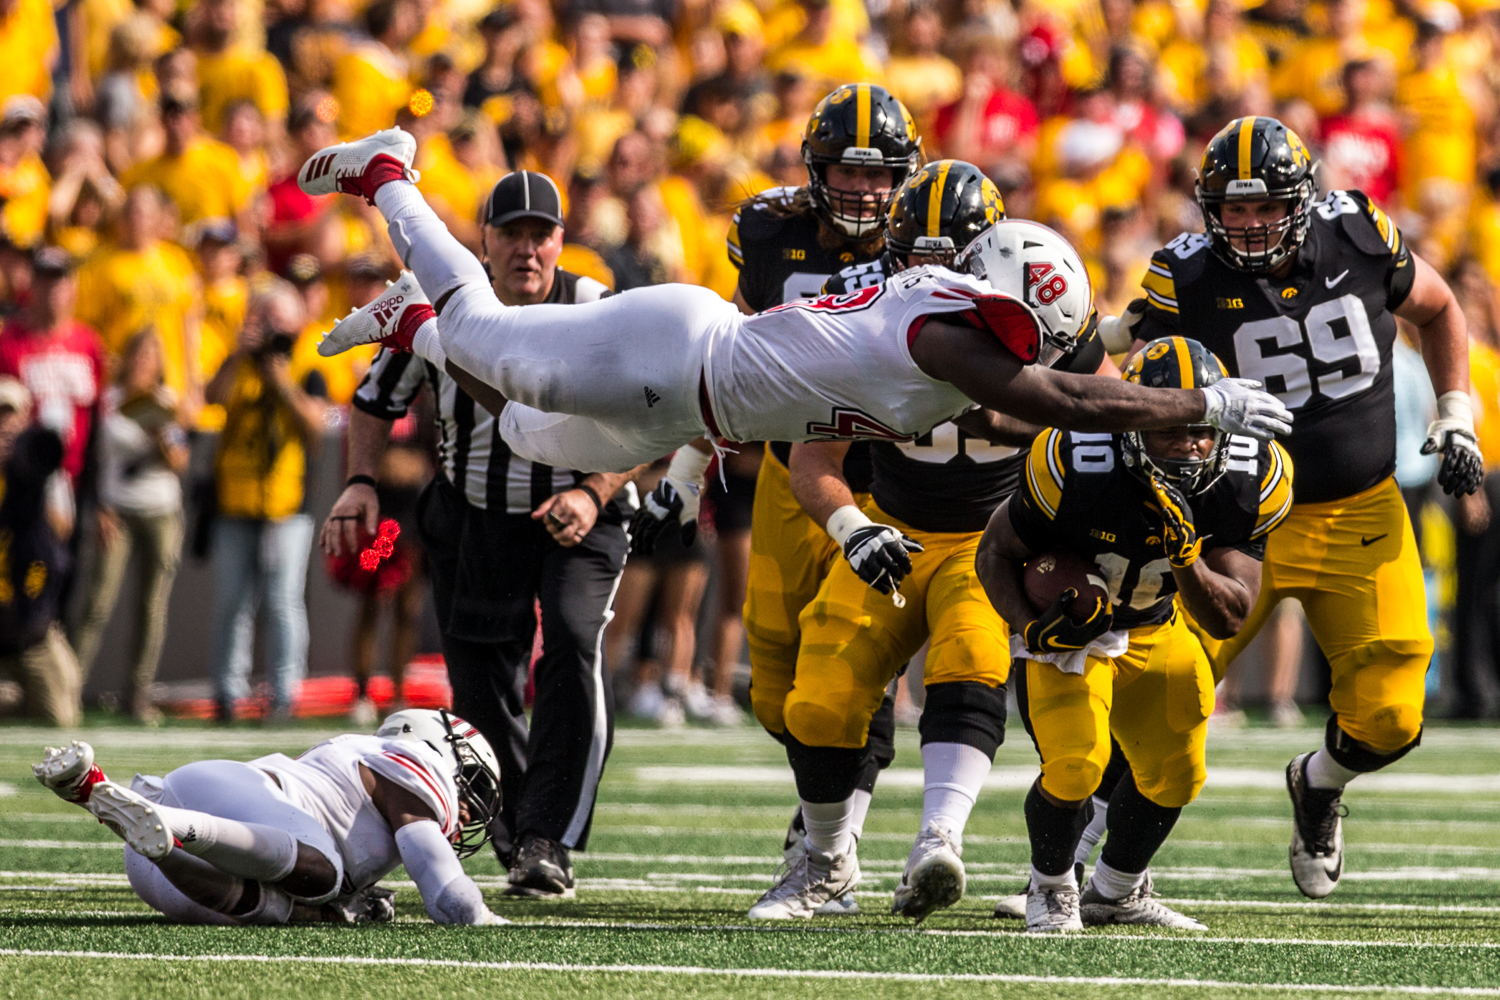 Iowa running back Mehki Sargent carries the ball during Iowa's game against Northern Illinois at Kinnick Stadium on Saturday, September 1, 2018. during Iowa's game against Northern Illinois at Kinnick Stadium on Saturday, September 1, 2018. The Hawkeyes defeated the Huskies 33-7.